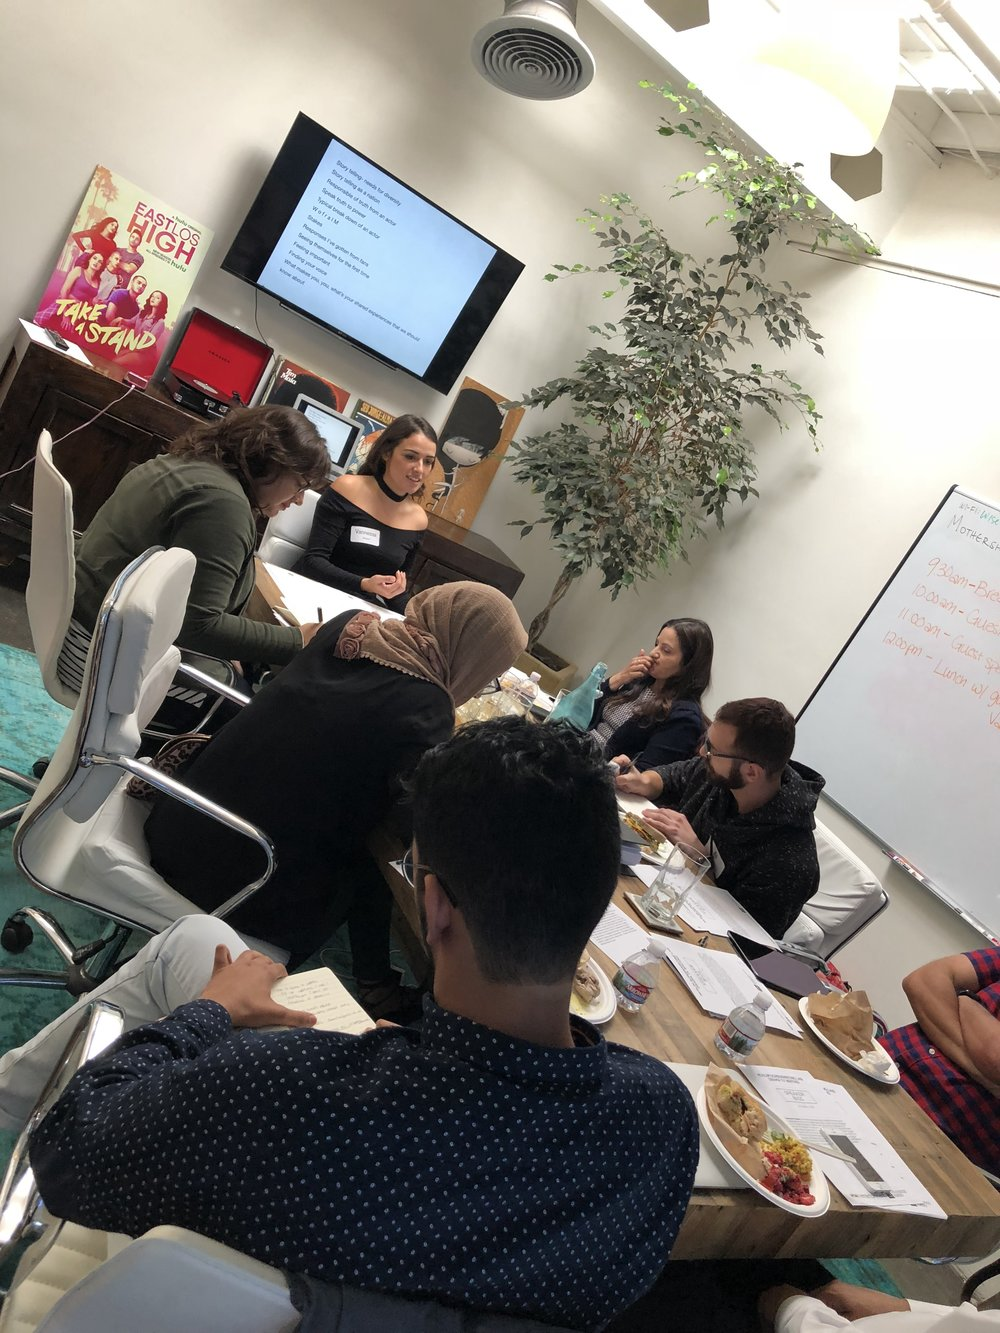 OUR SERIES CREATOR STUDYING WITH EMMY NOMINATED VANNESSA VASQUES OF EAST LOS HIGH TO DEVELOP QUEER CHARACTERS OF COLOR.